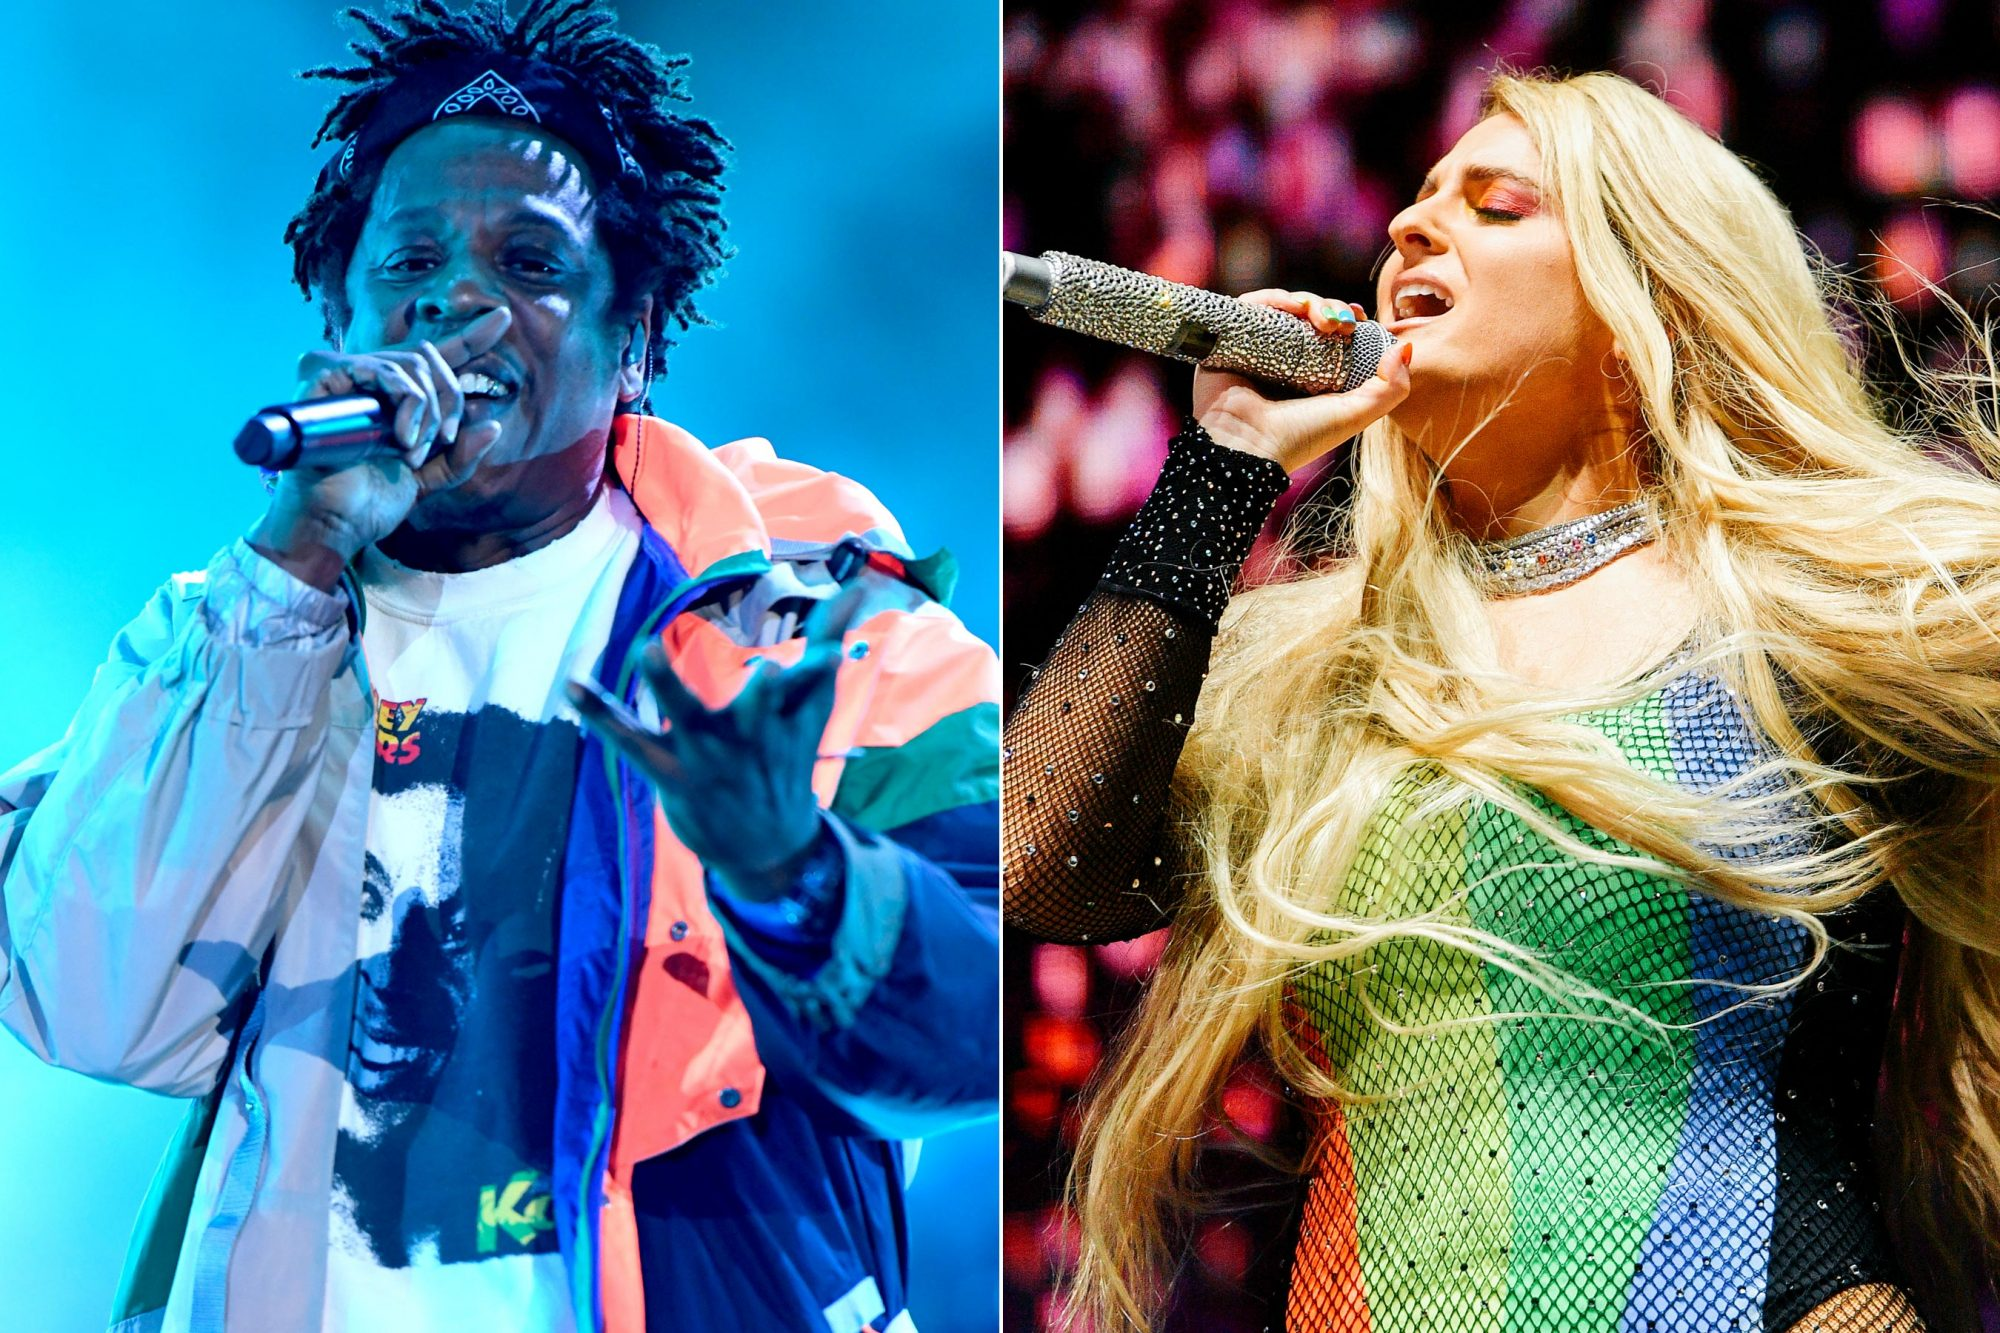 VIRGINIA BEACH, VIRGINIA - APRIL 27: Jay-Z performs onstage at SOMETHING IN THE WATER - Day 2 on April 27, 2019 in Virginia Beach City. (Photo by Craig Barritt/Getty Images for Something in the Water) WEST HOLLYWOOD, CALIFORNIA - JUNE 08: Meghan Trainor performs at the LA Pride 2019 on June 08, 2019 in West Hollywood, California. (Photo by Matt Winkelmeyer/Getty Images)